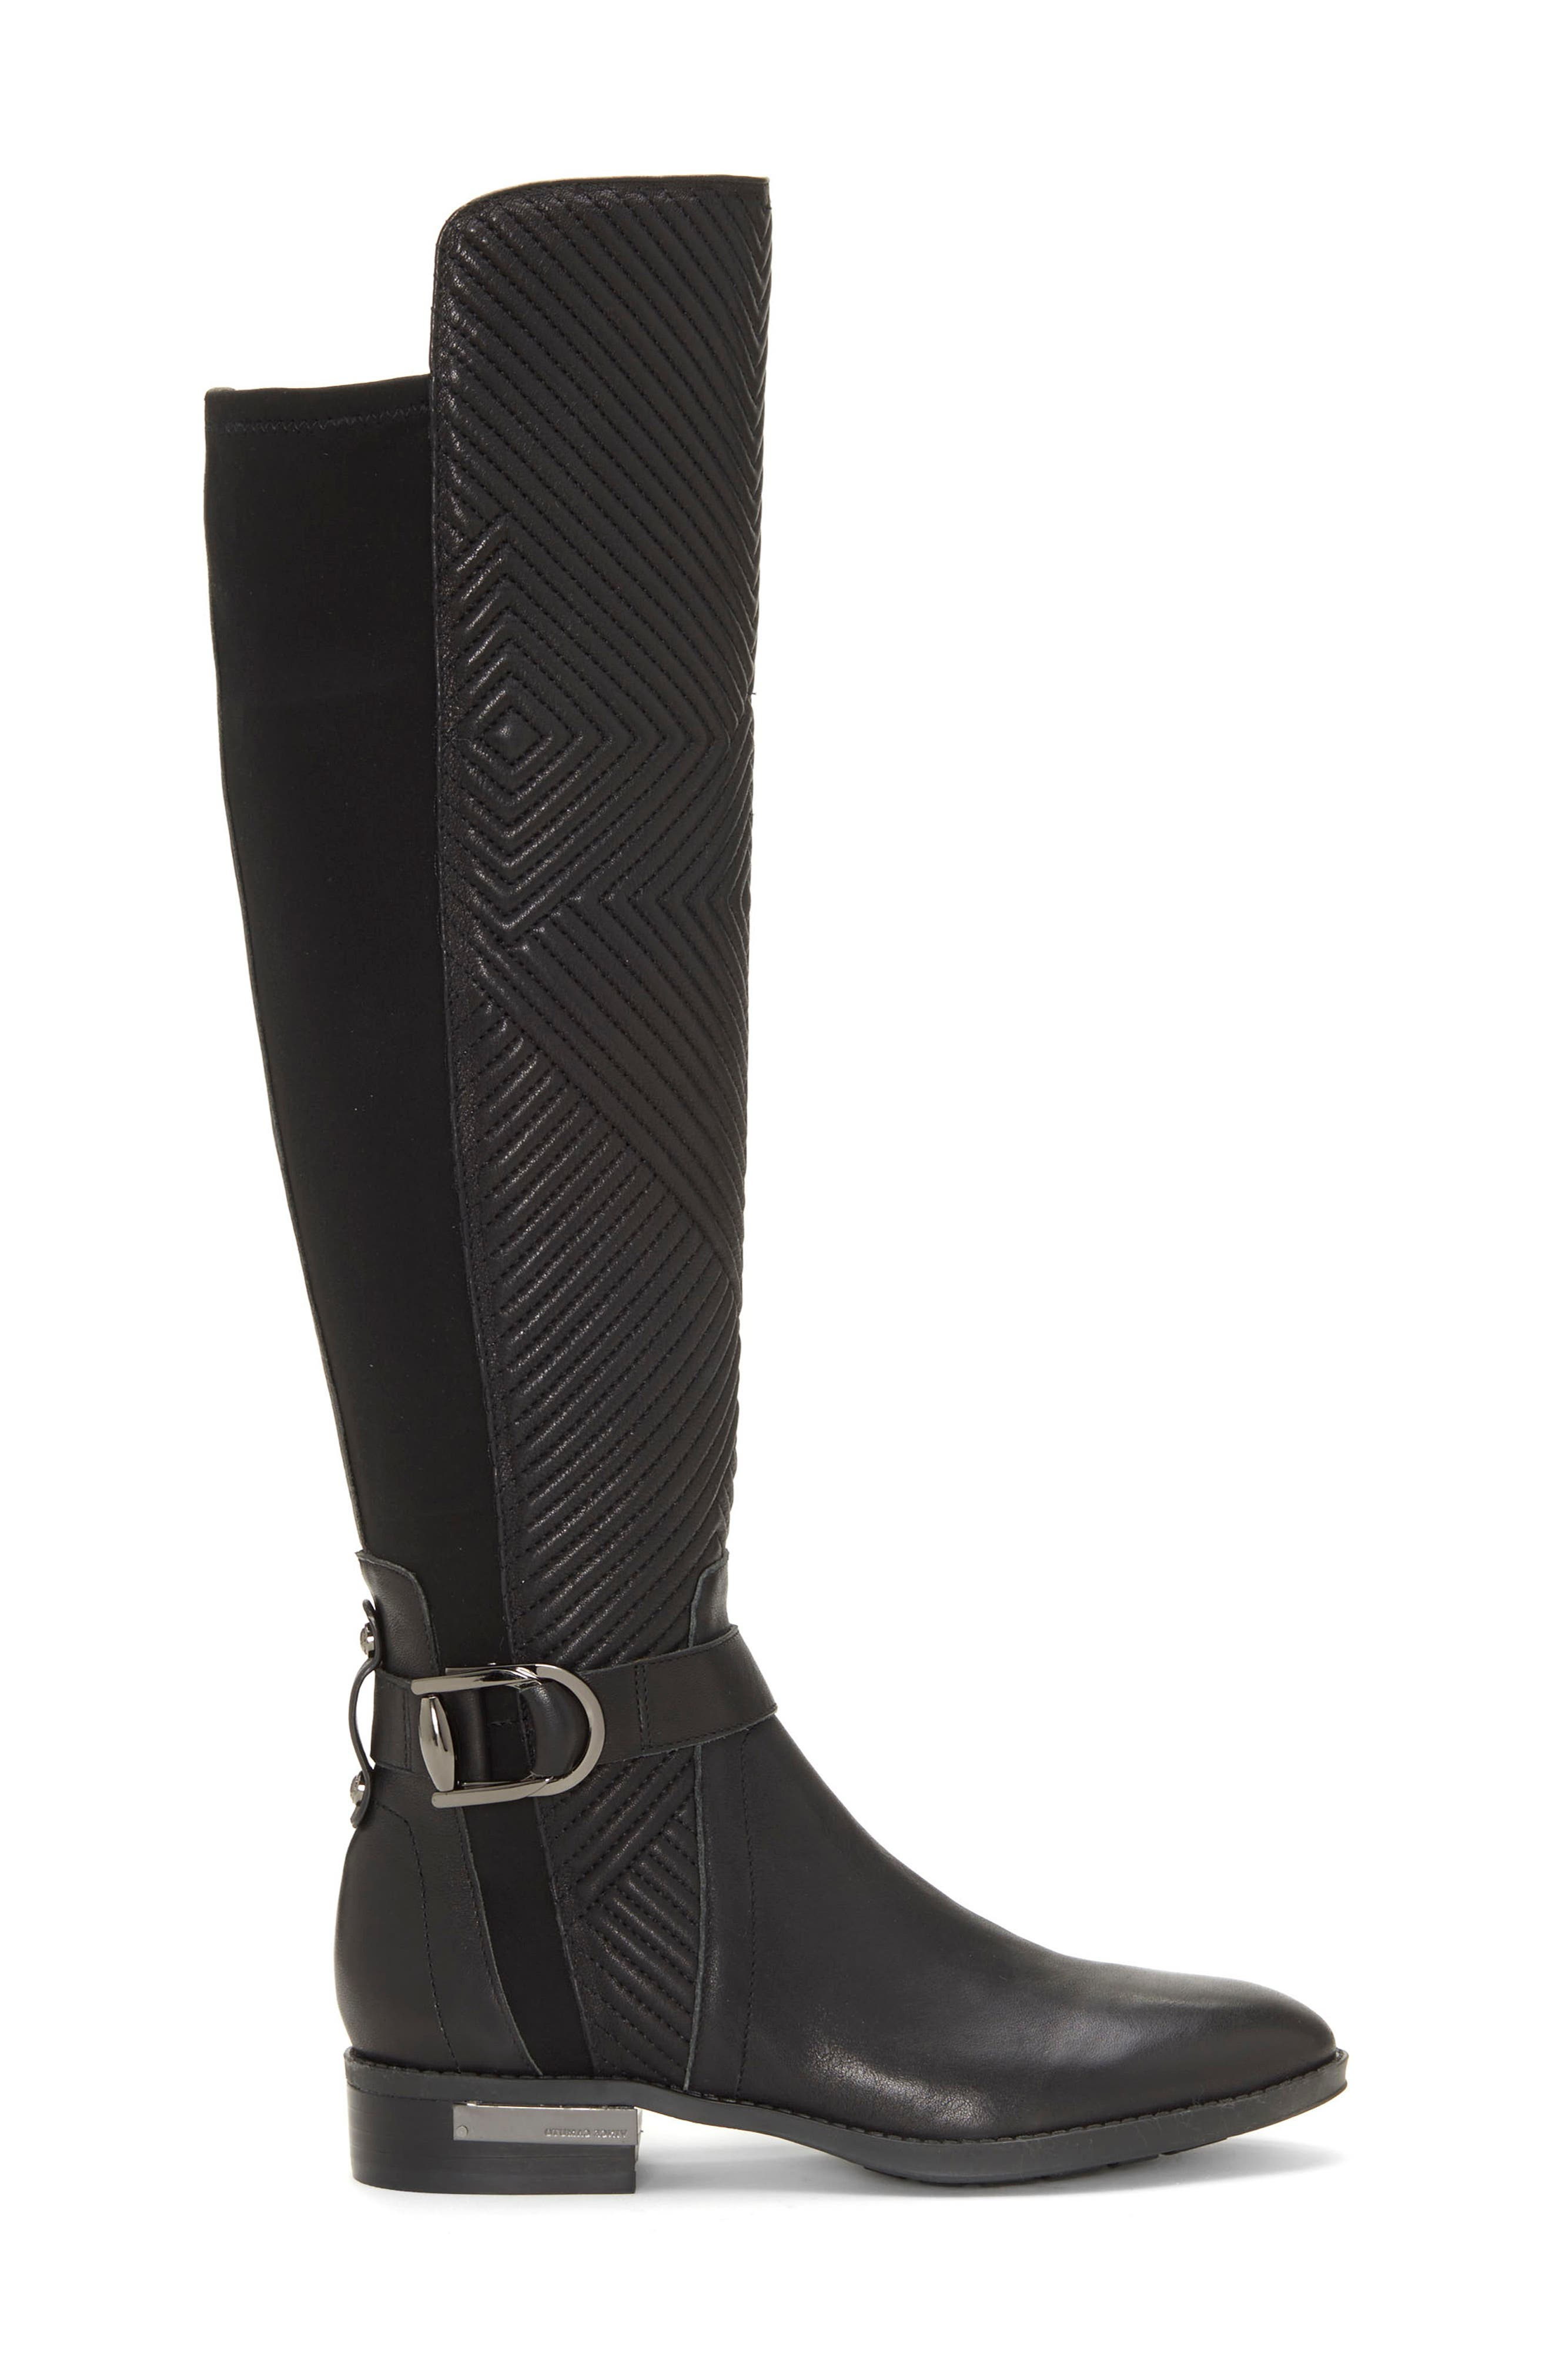 Pordalia Over-the-Knee Boot,                             Alternate thumbnail 3, color,                             BLACK LEATHER